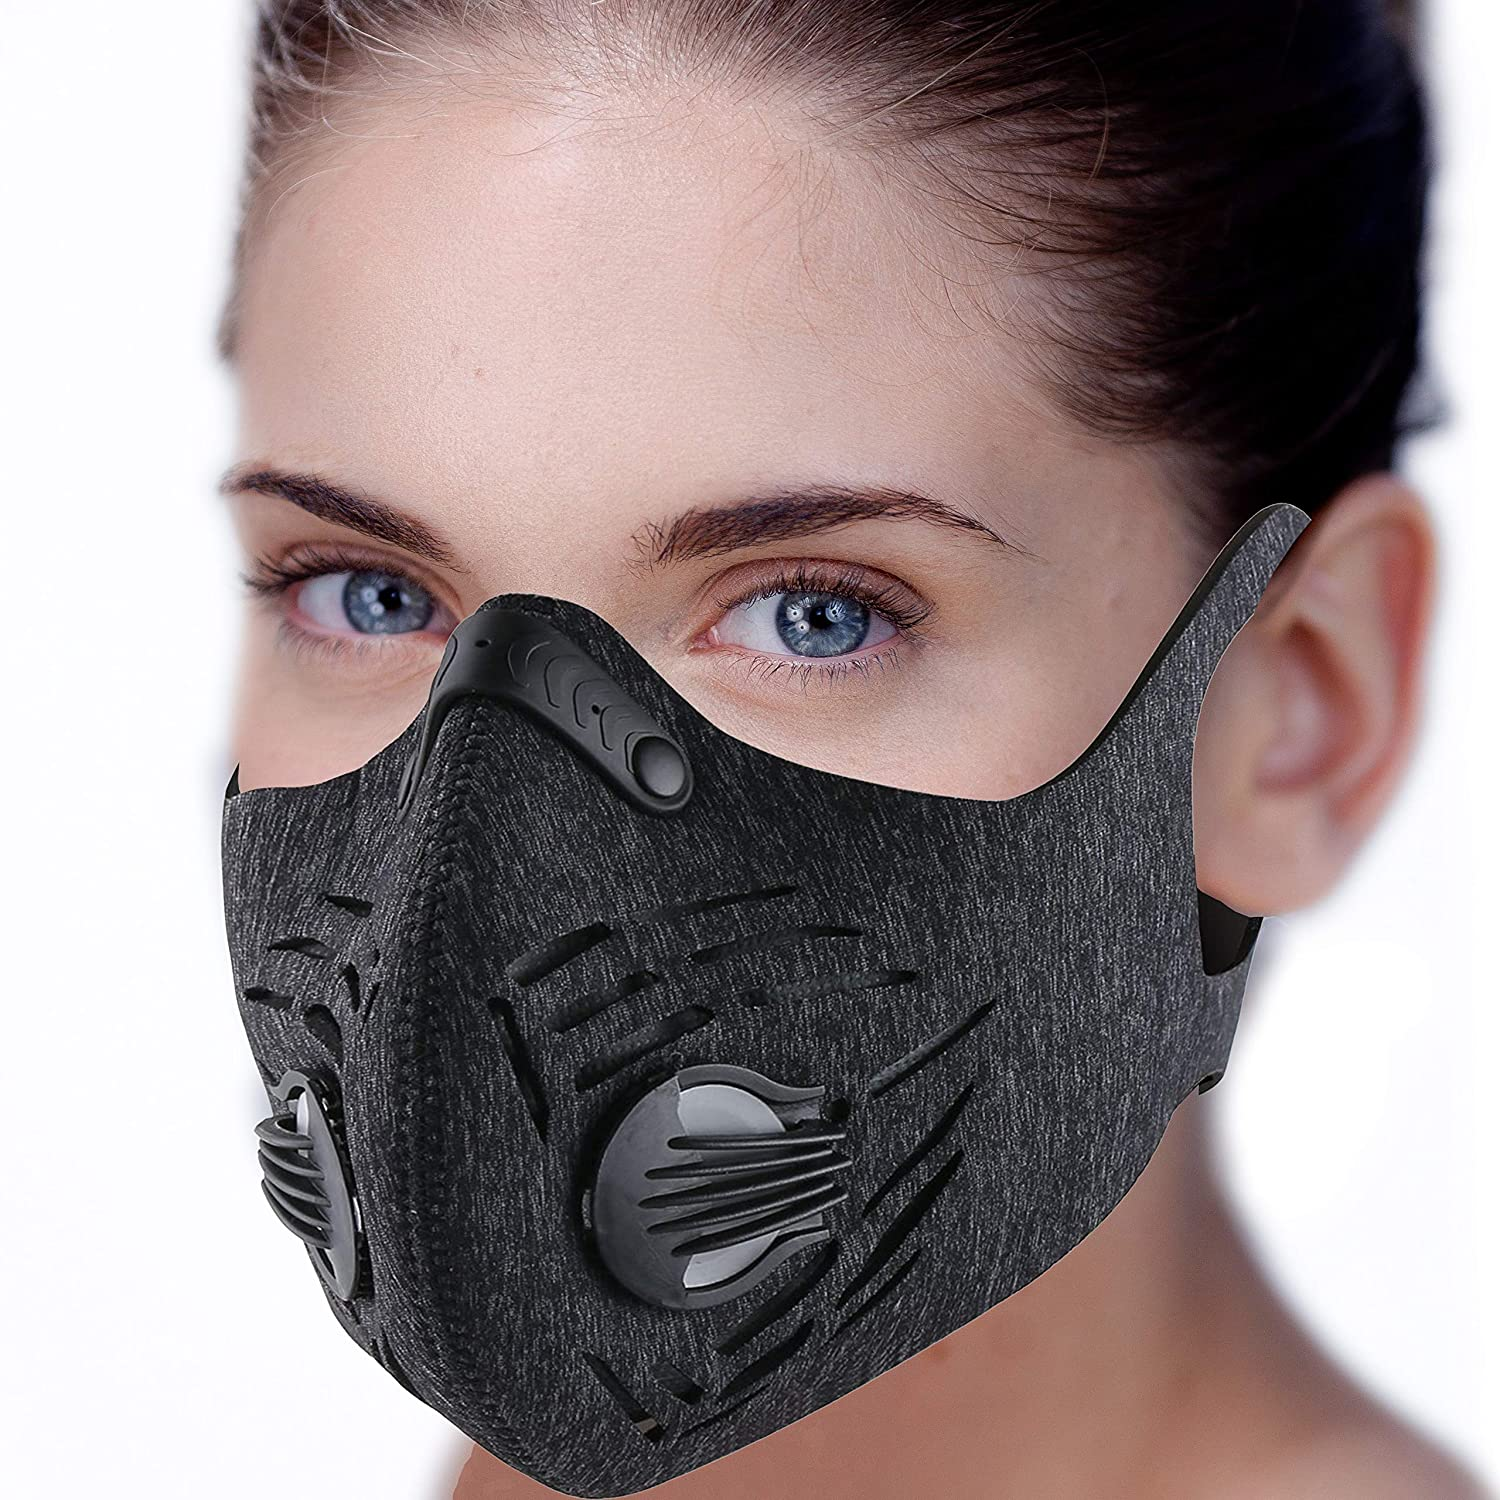 Dust Mask, RooRuns Dustproof Mask (with Ear-loop) Activated Carbon Filtration Exhaust Anti Pollen Allergy PM2.5 Dust-proof Mask for Running, Woodworking, House Cleaning, Gardening and Other Activities RRMask2G